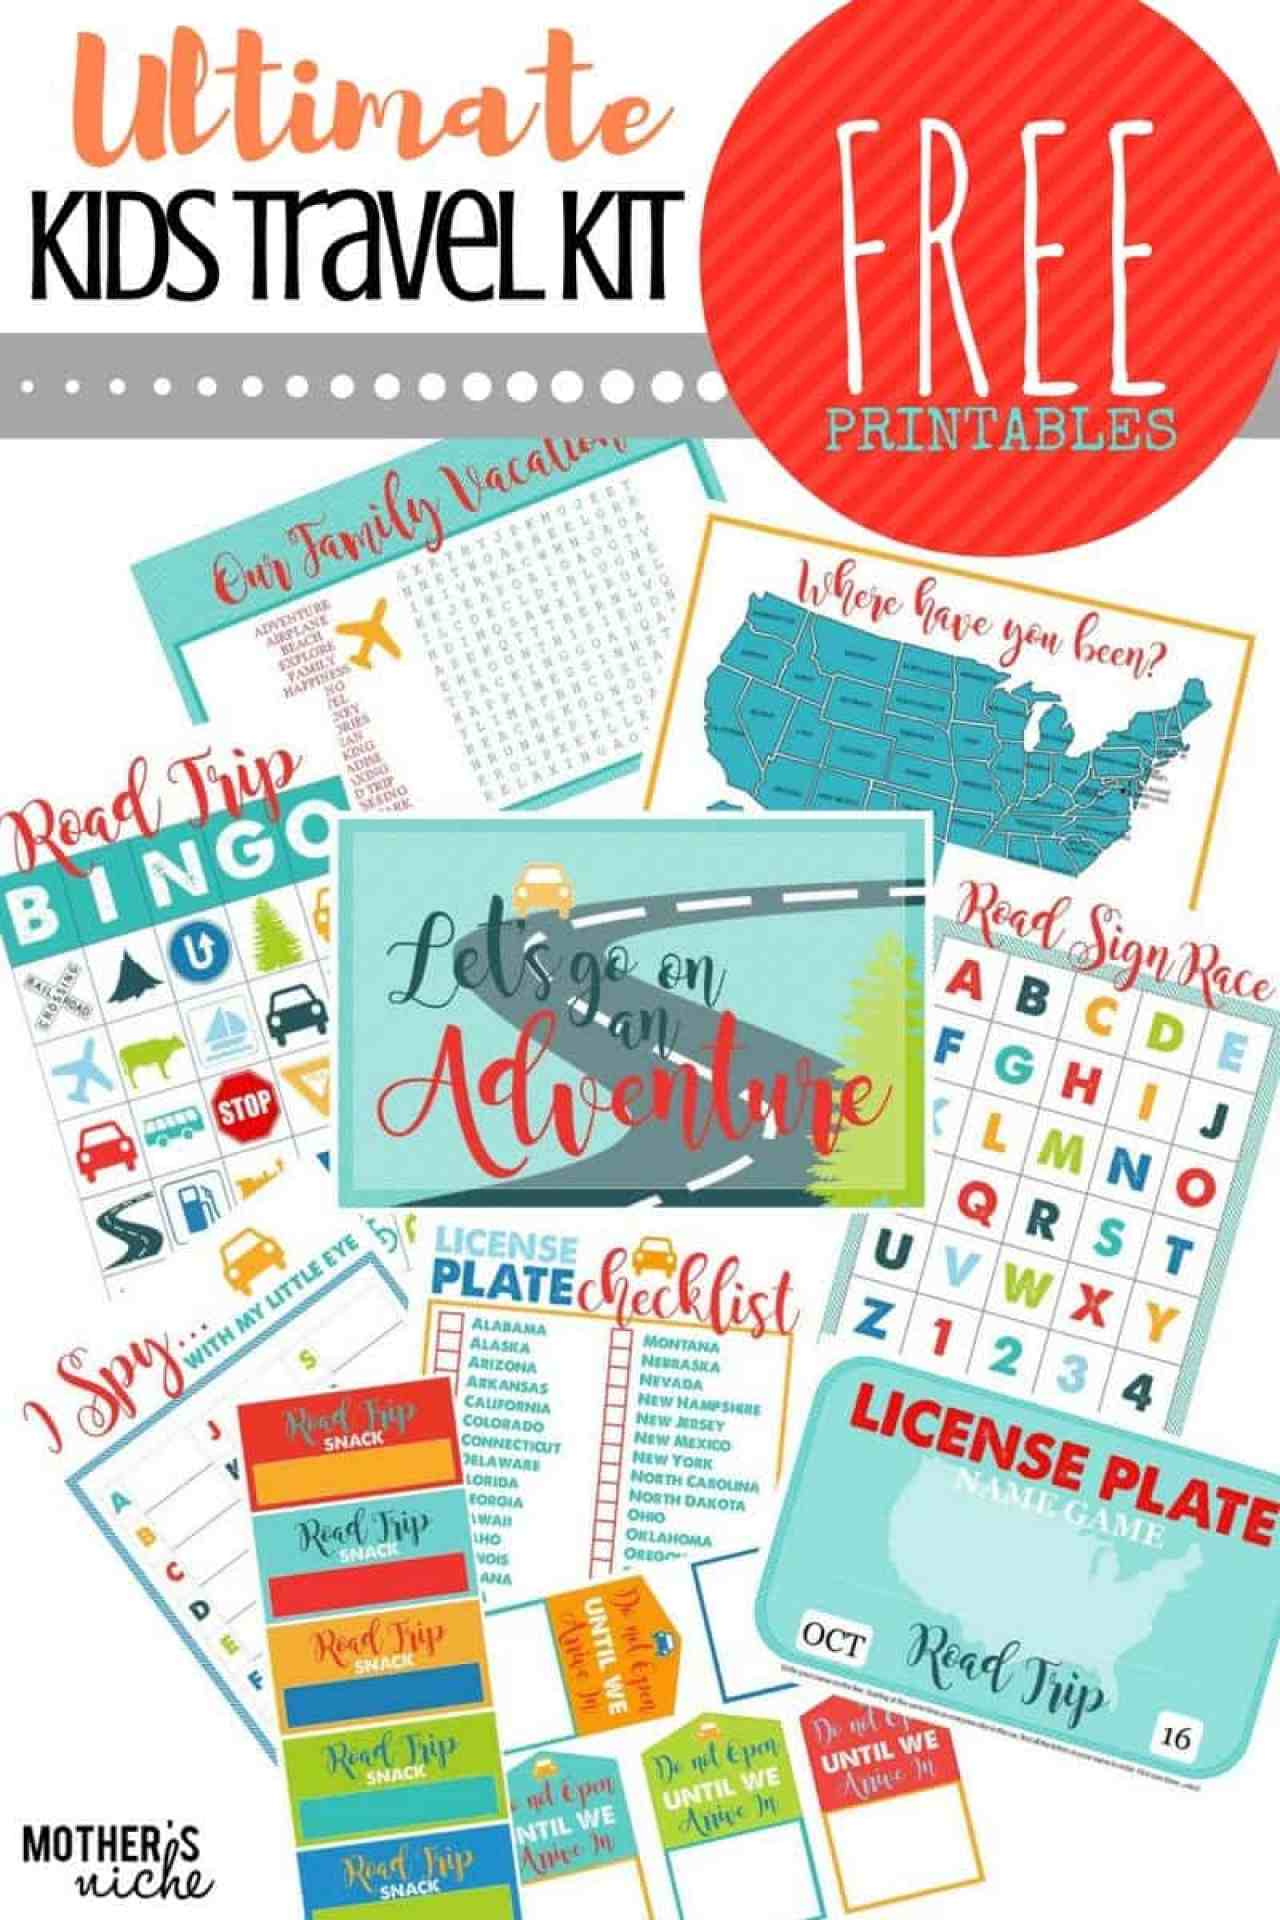 FREE TRAVEL PRINTABLES